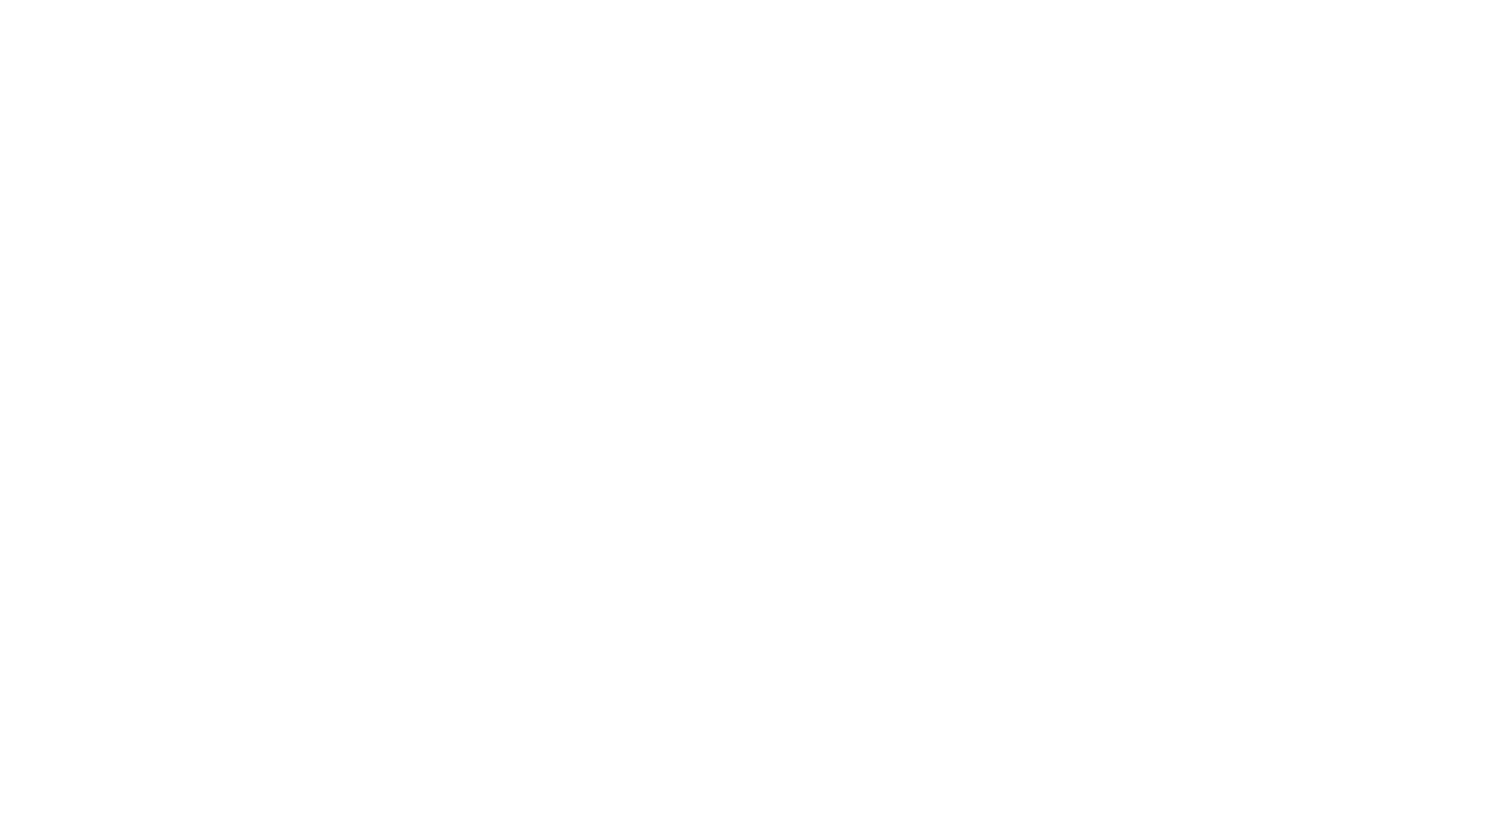 Mindfulness Advisory Group